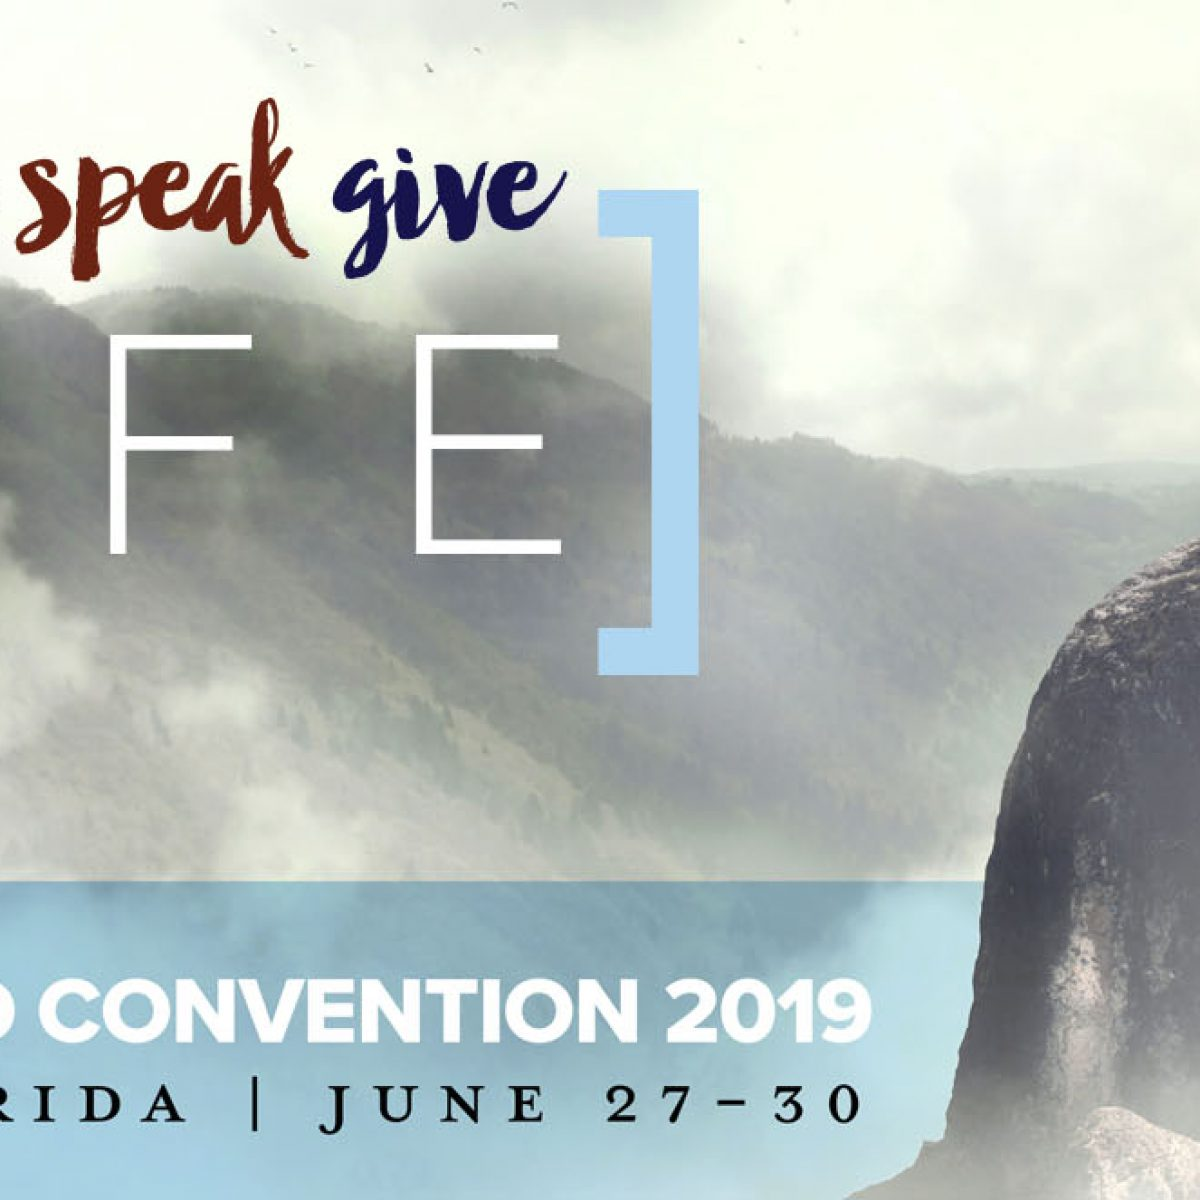 Convention 2019 TO BRING MOVEMENT TOGETHER IN Sunny Florida